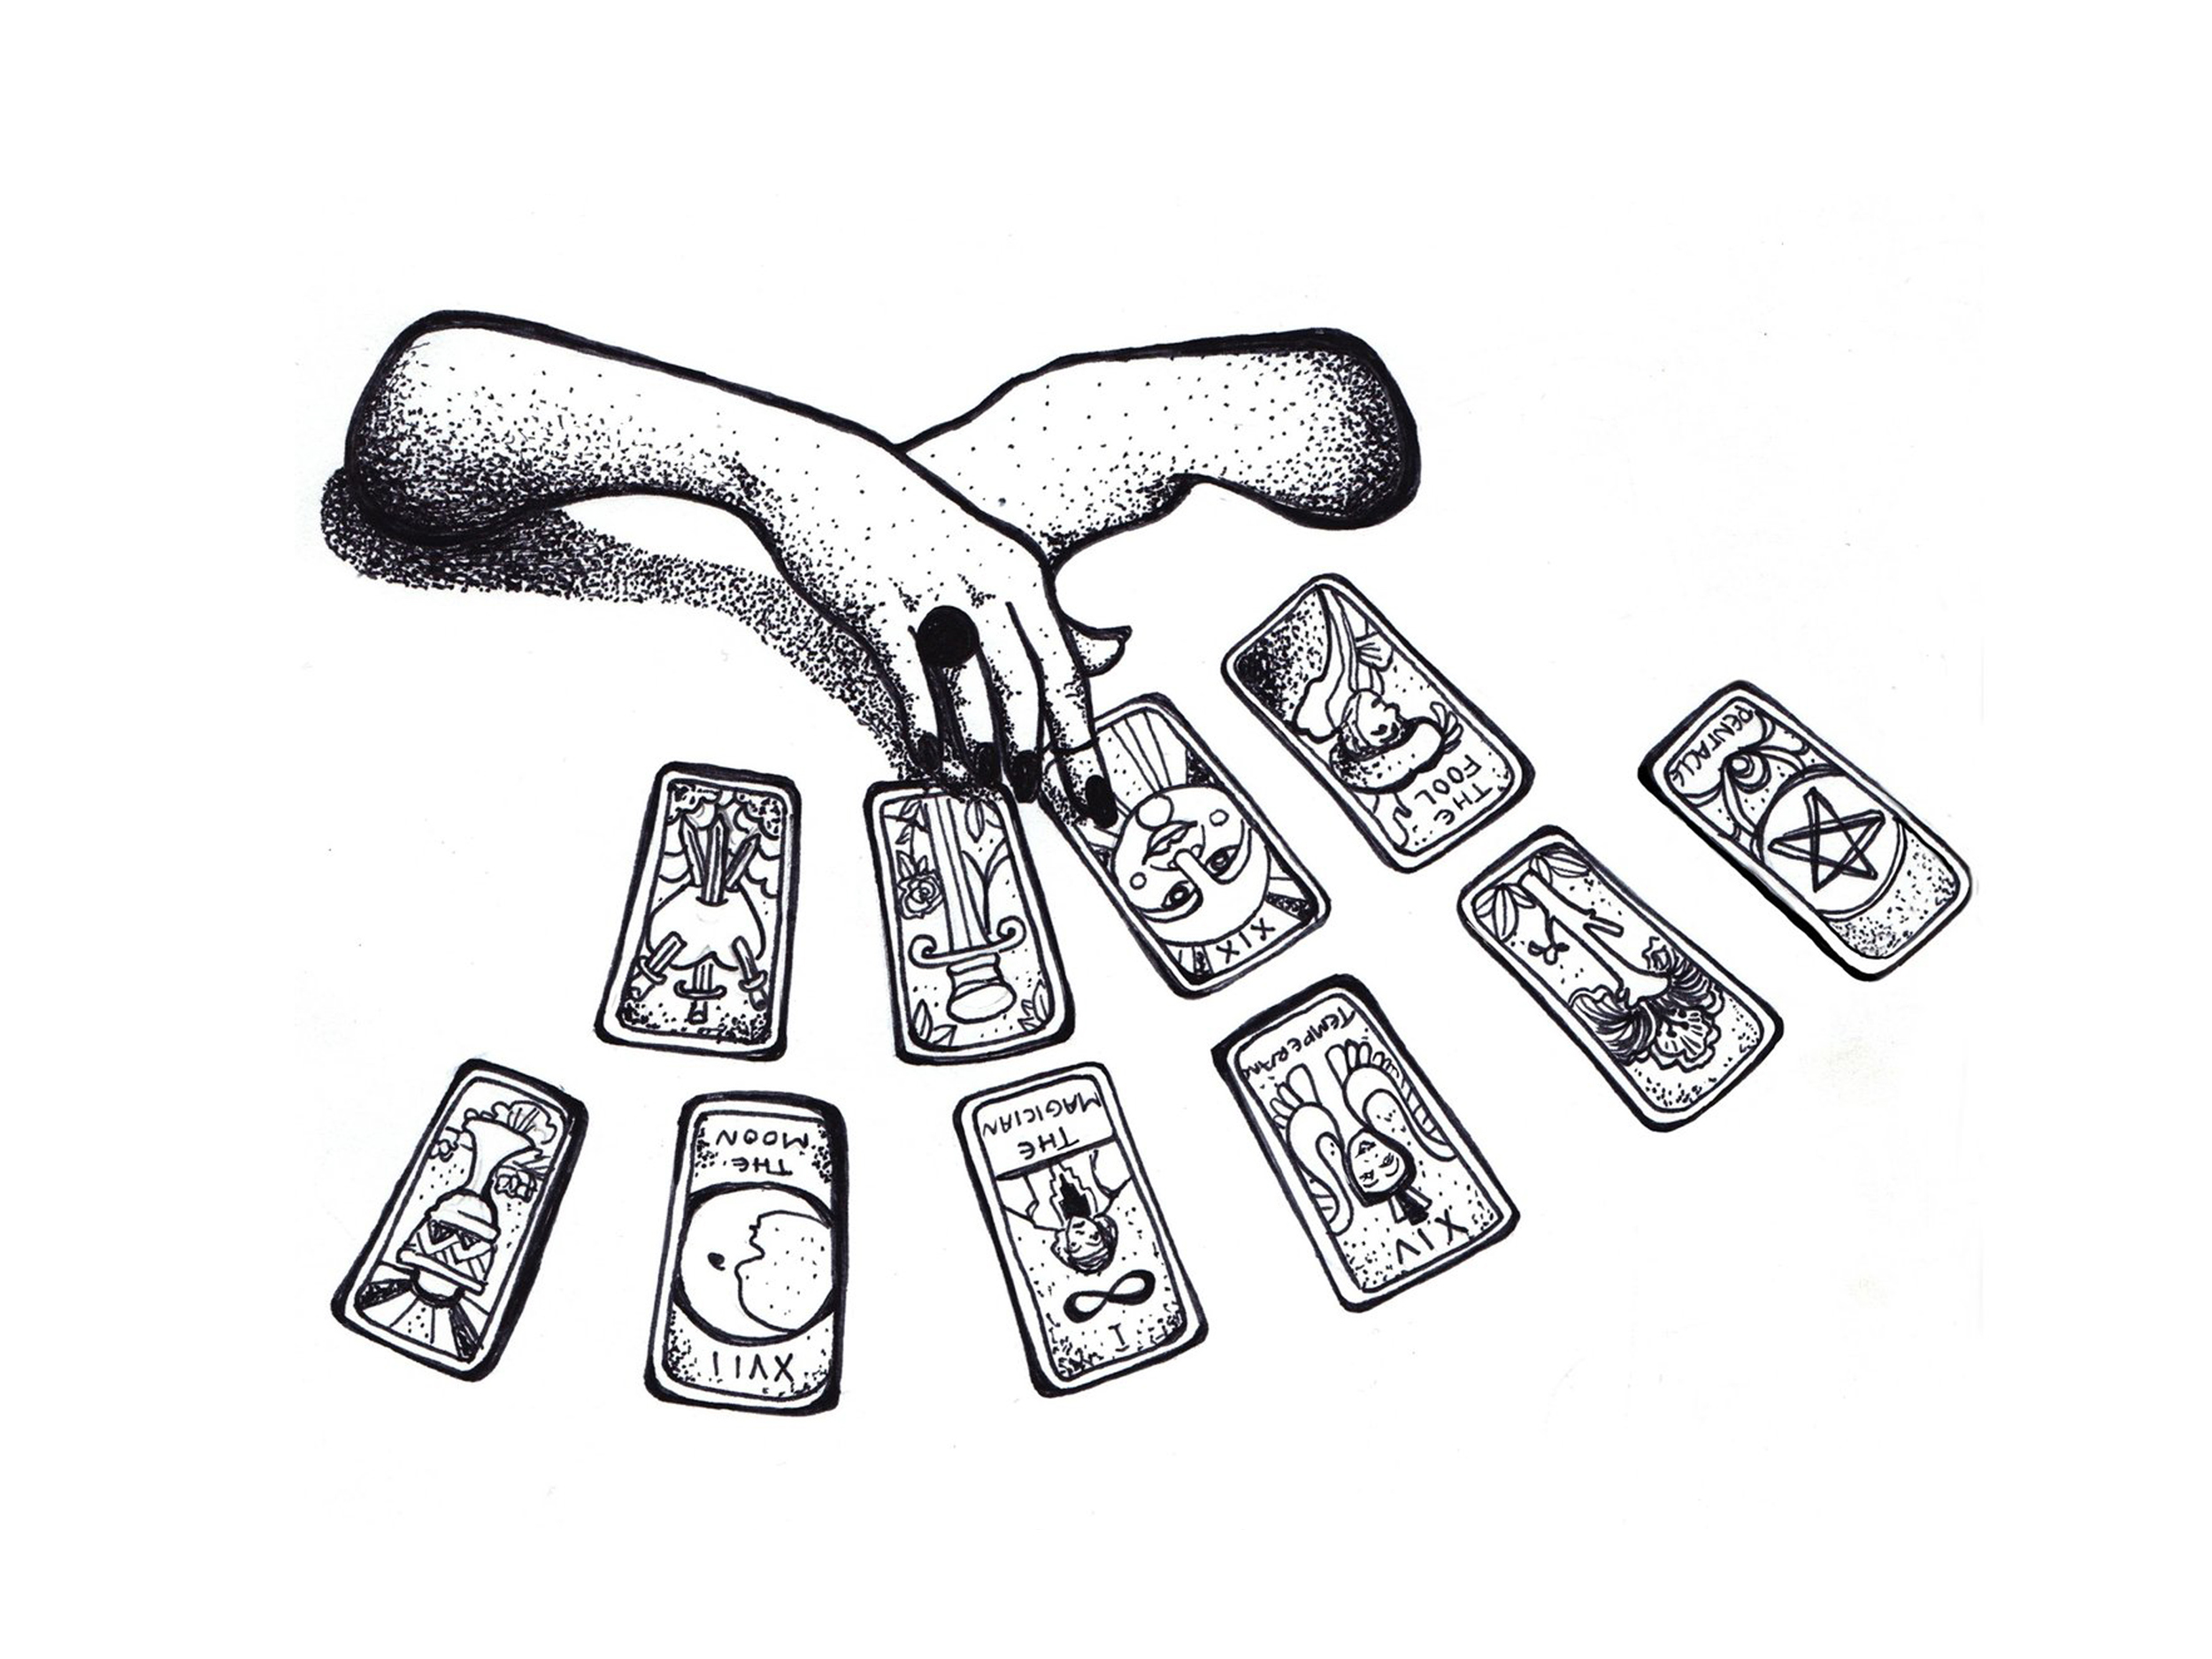 tarot cards, stippling, hands, occult, doodles